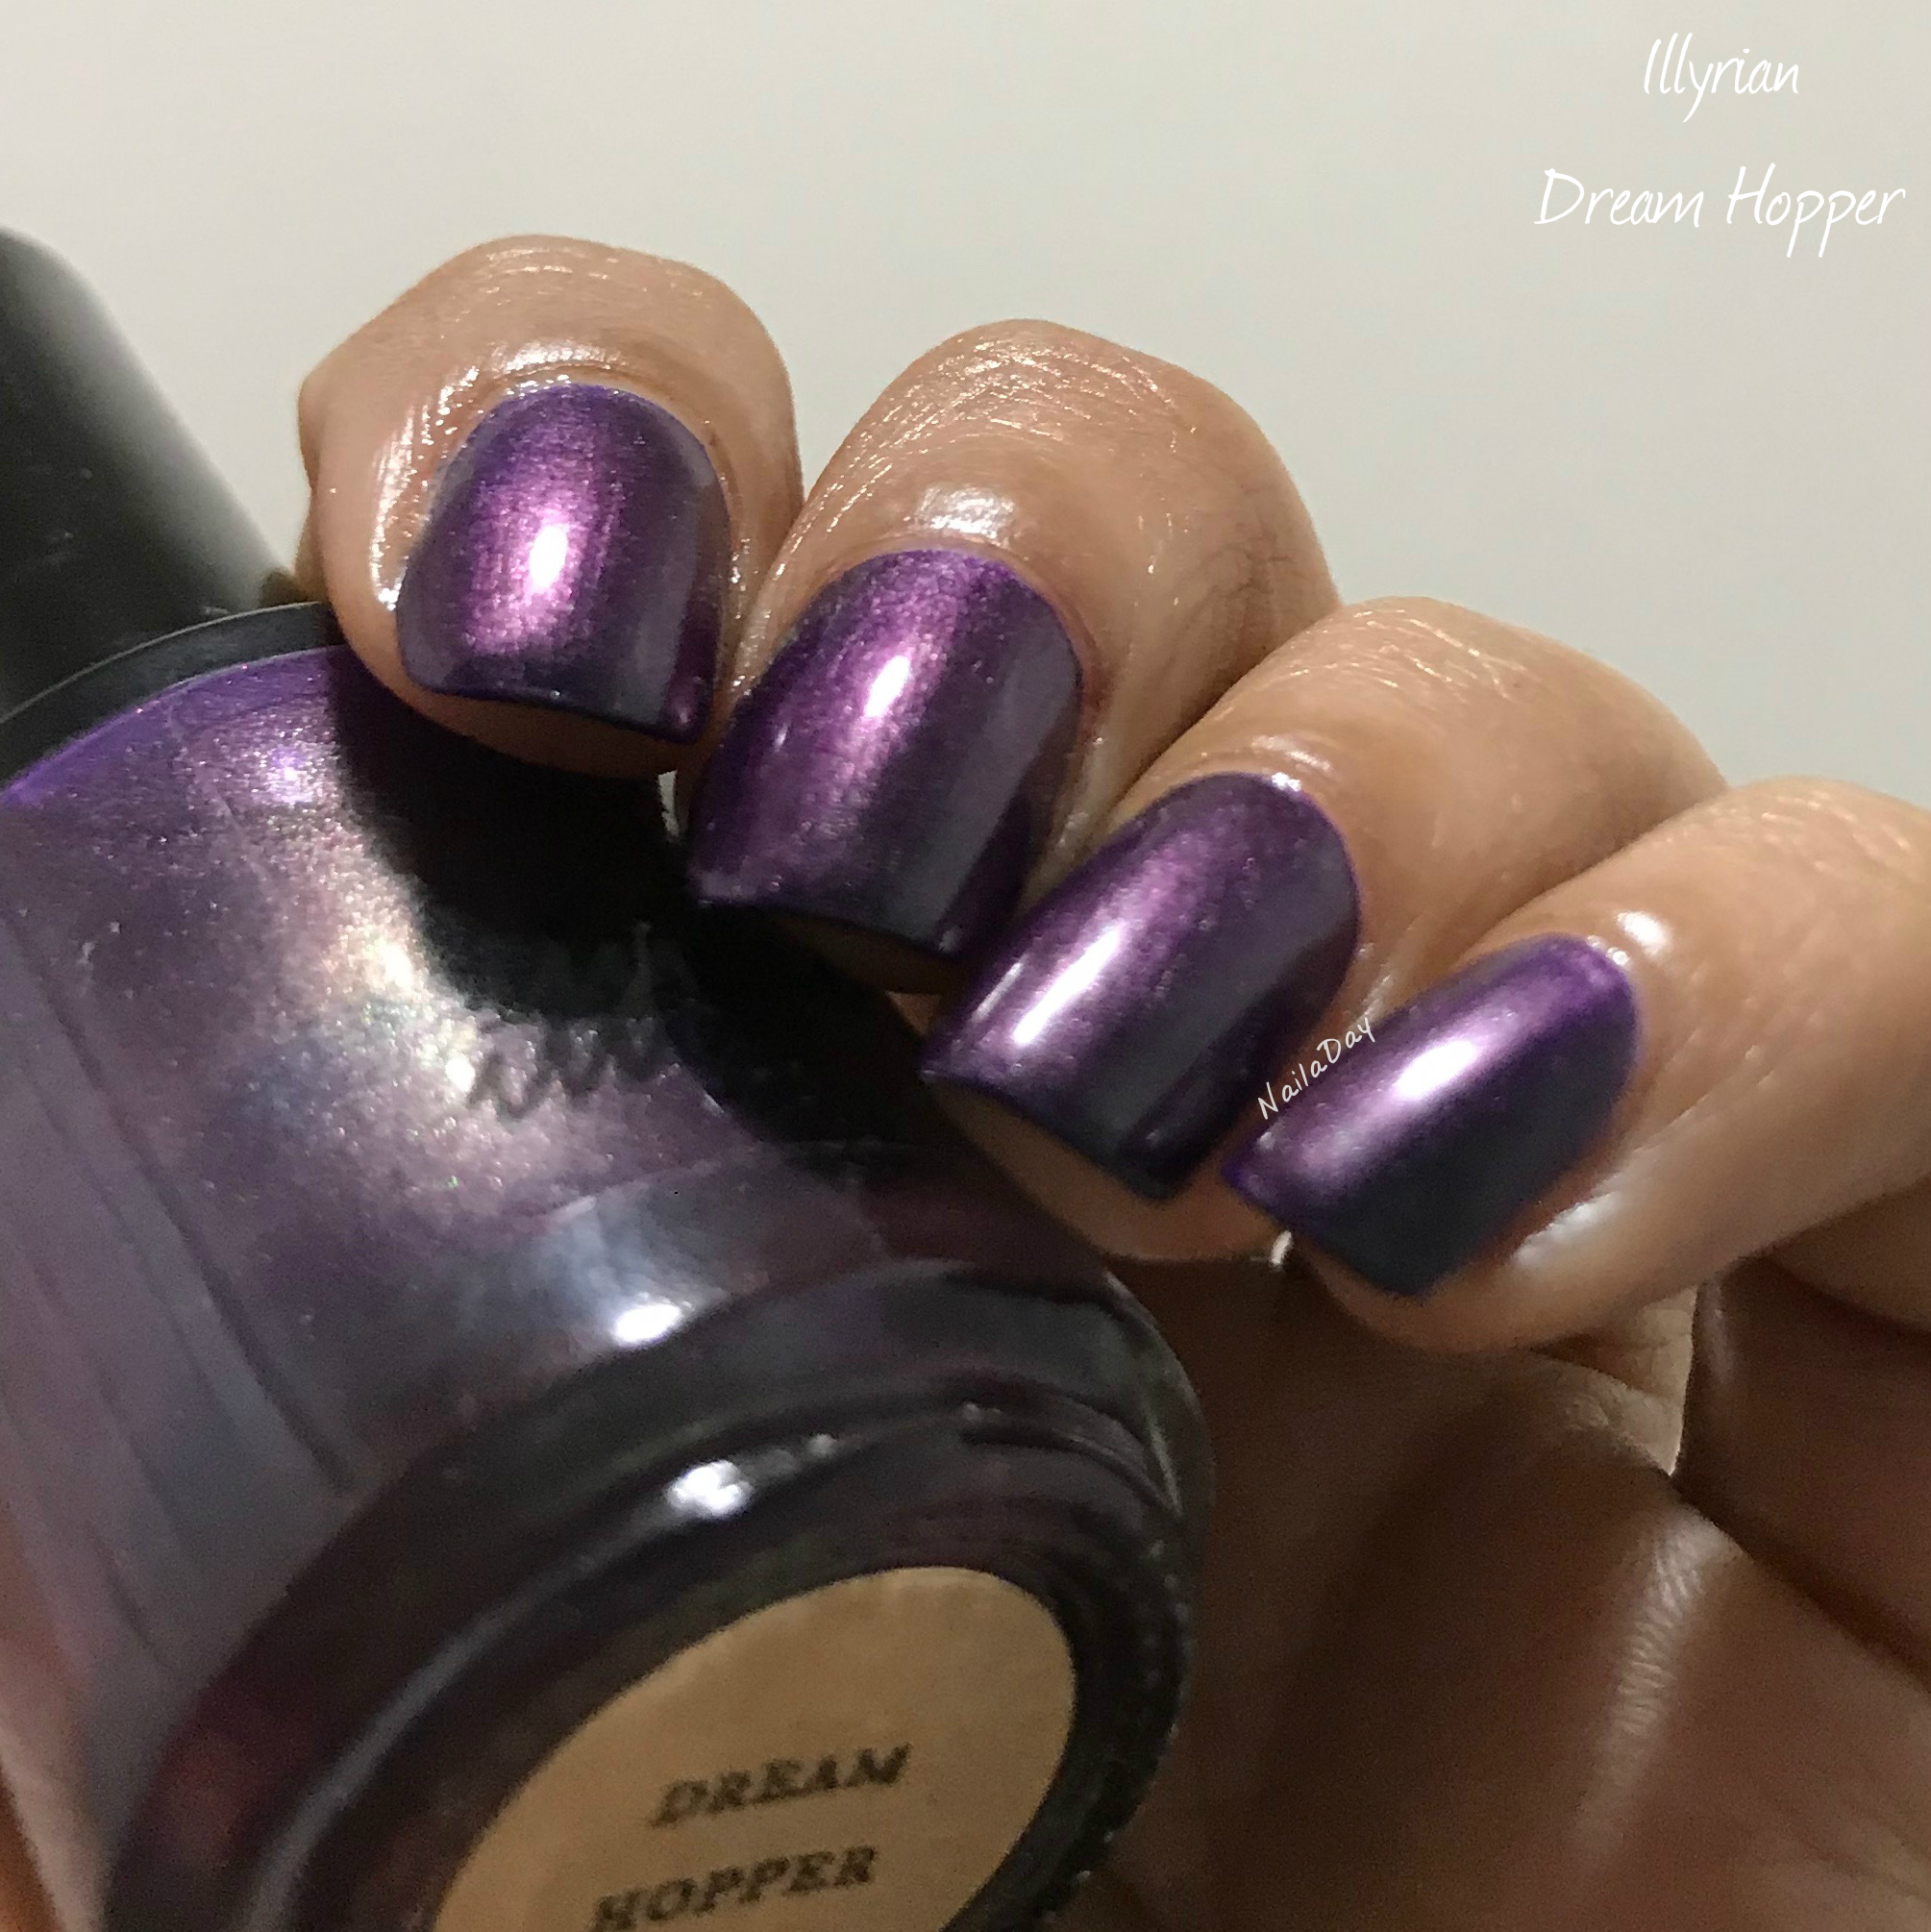 NailaDay: Illyrian Dream Hopper